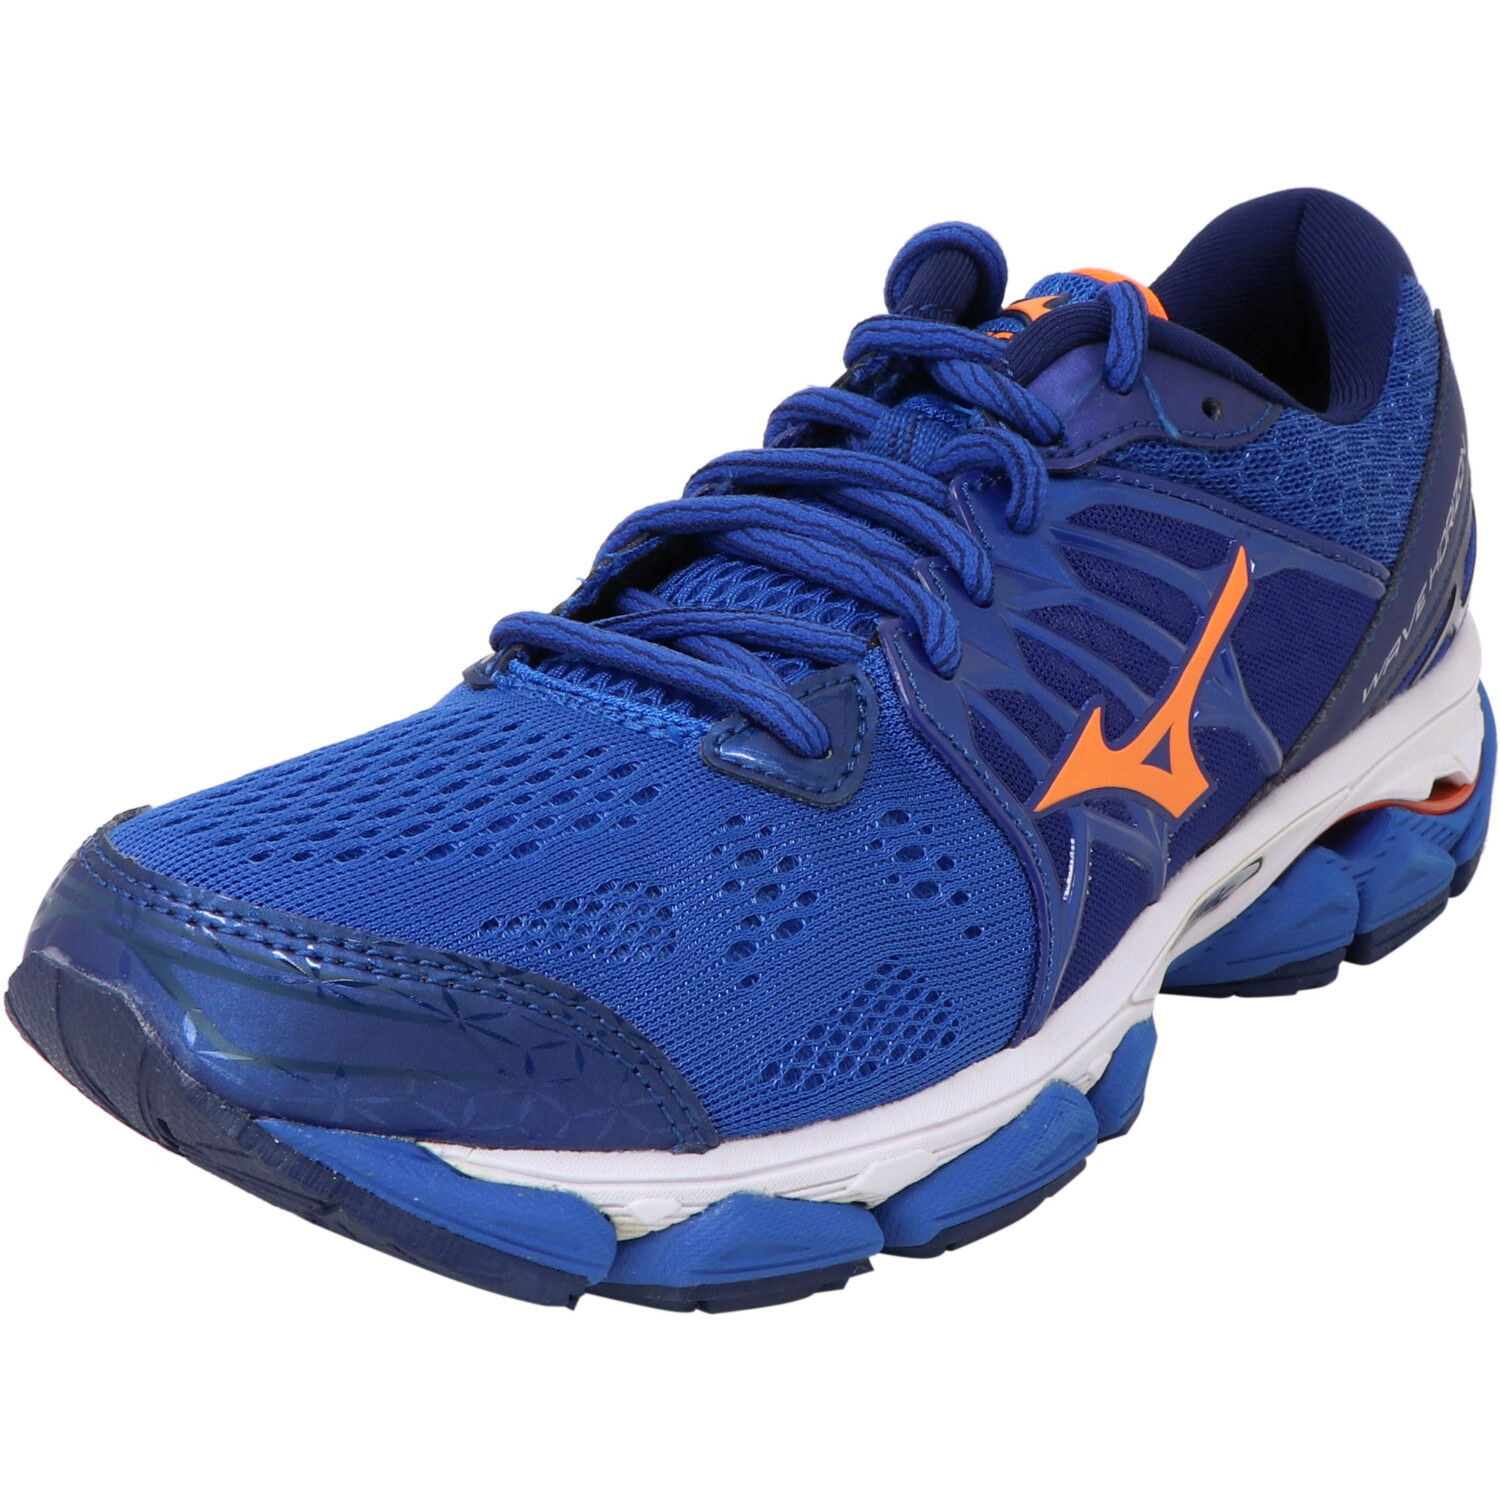 mizuno mens running shoes size 9 years old king cole dress